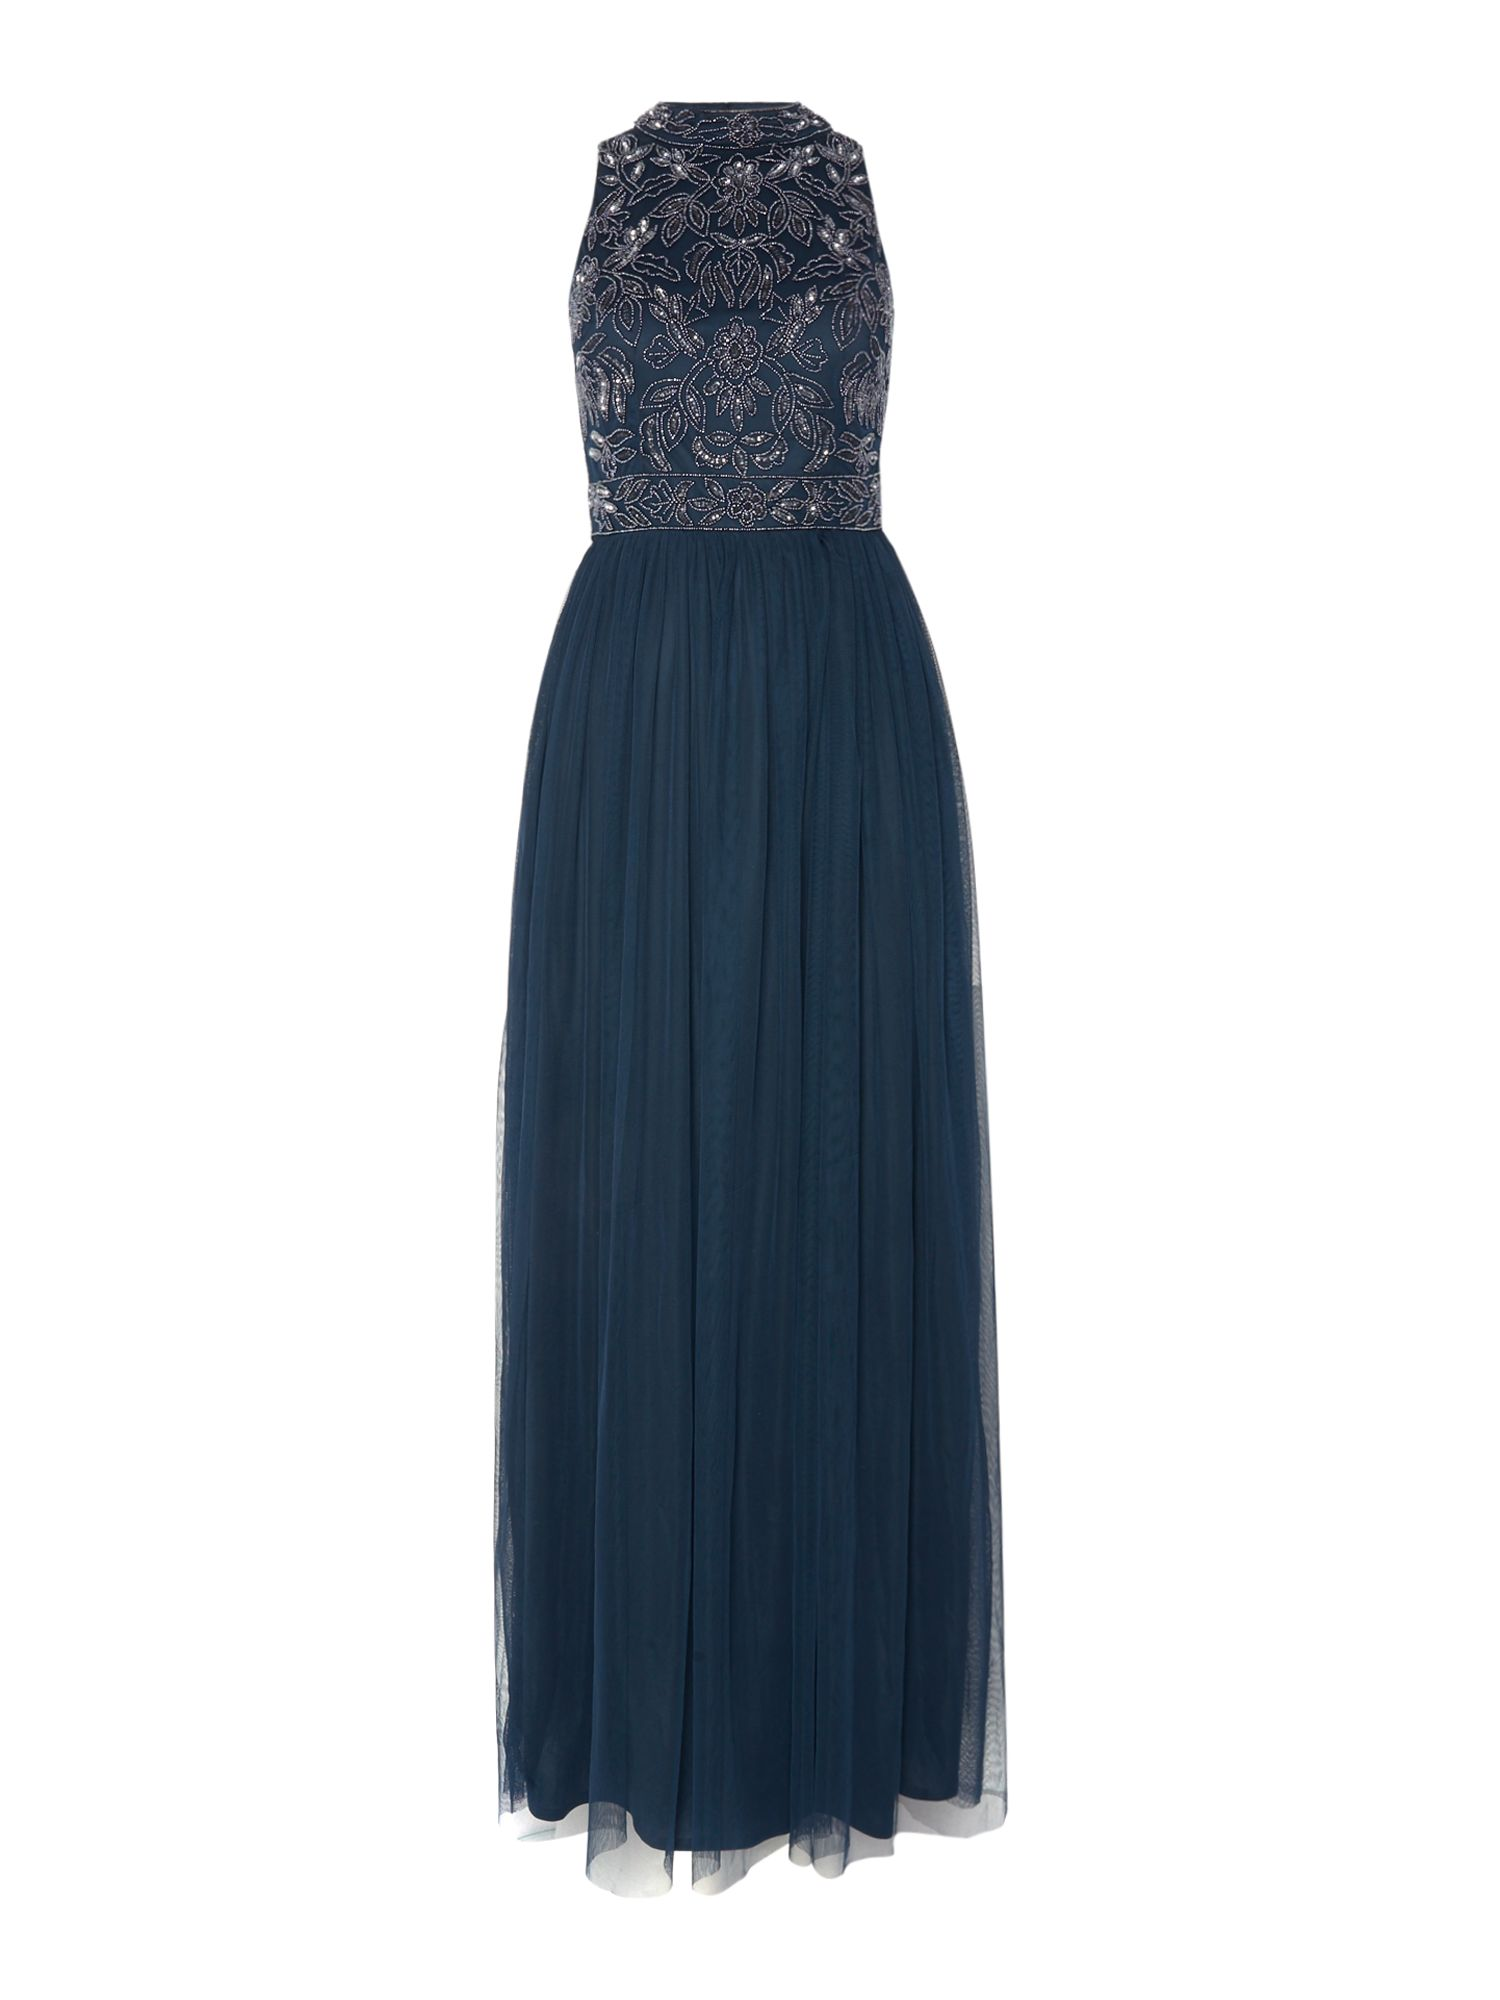 Lace and Beads Short sleeve high neck maxi dress, Blue